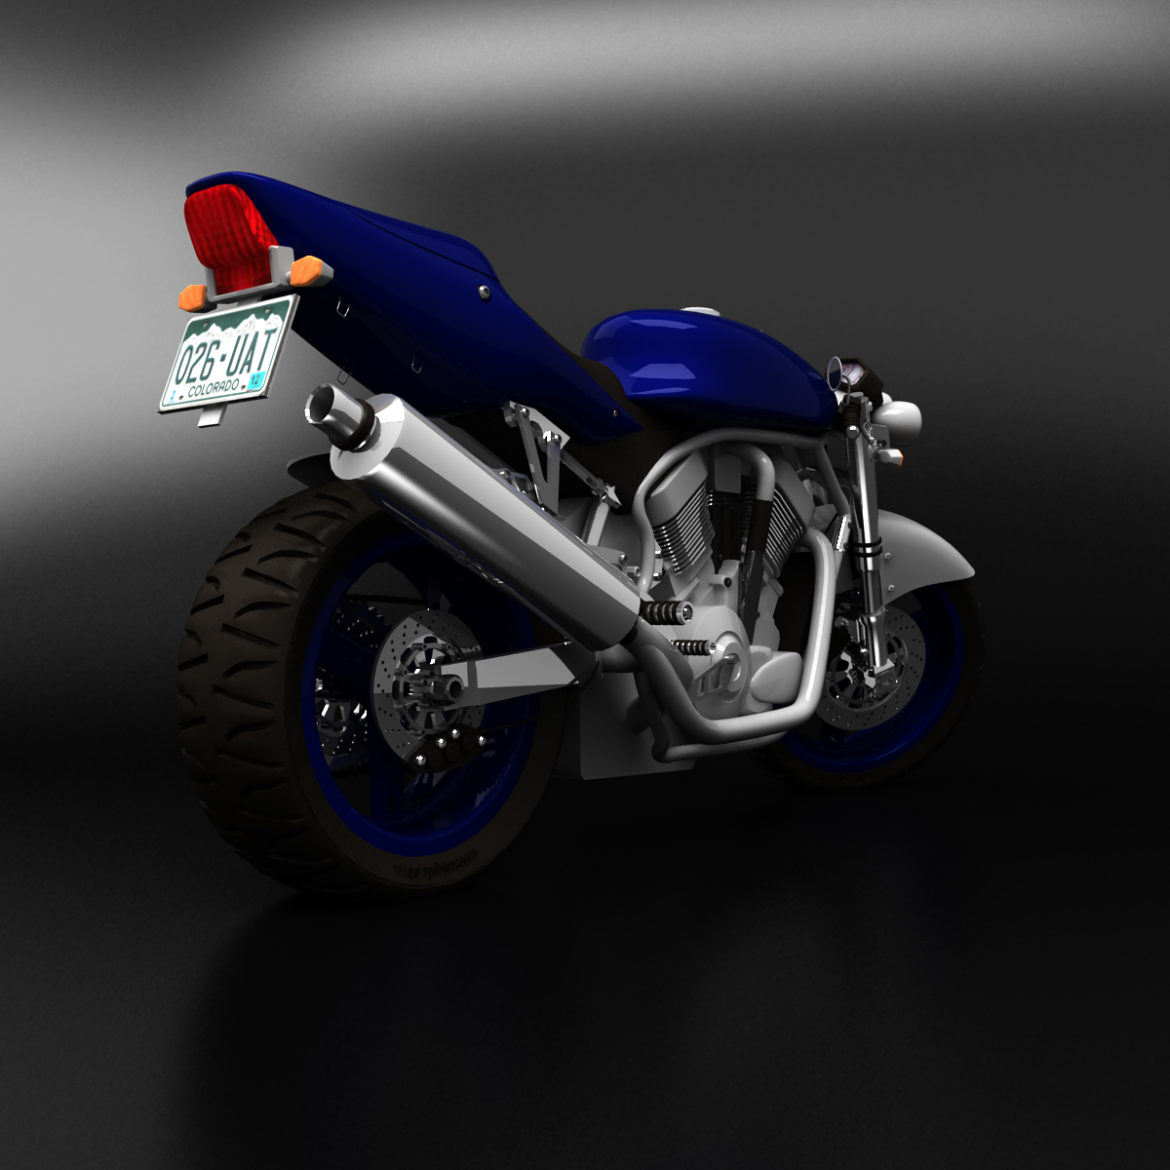 suzuki street fighter motorcycle 3d model 3ds max fbx obj 293876